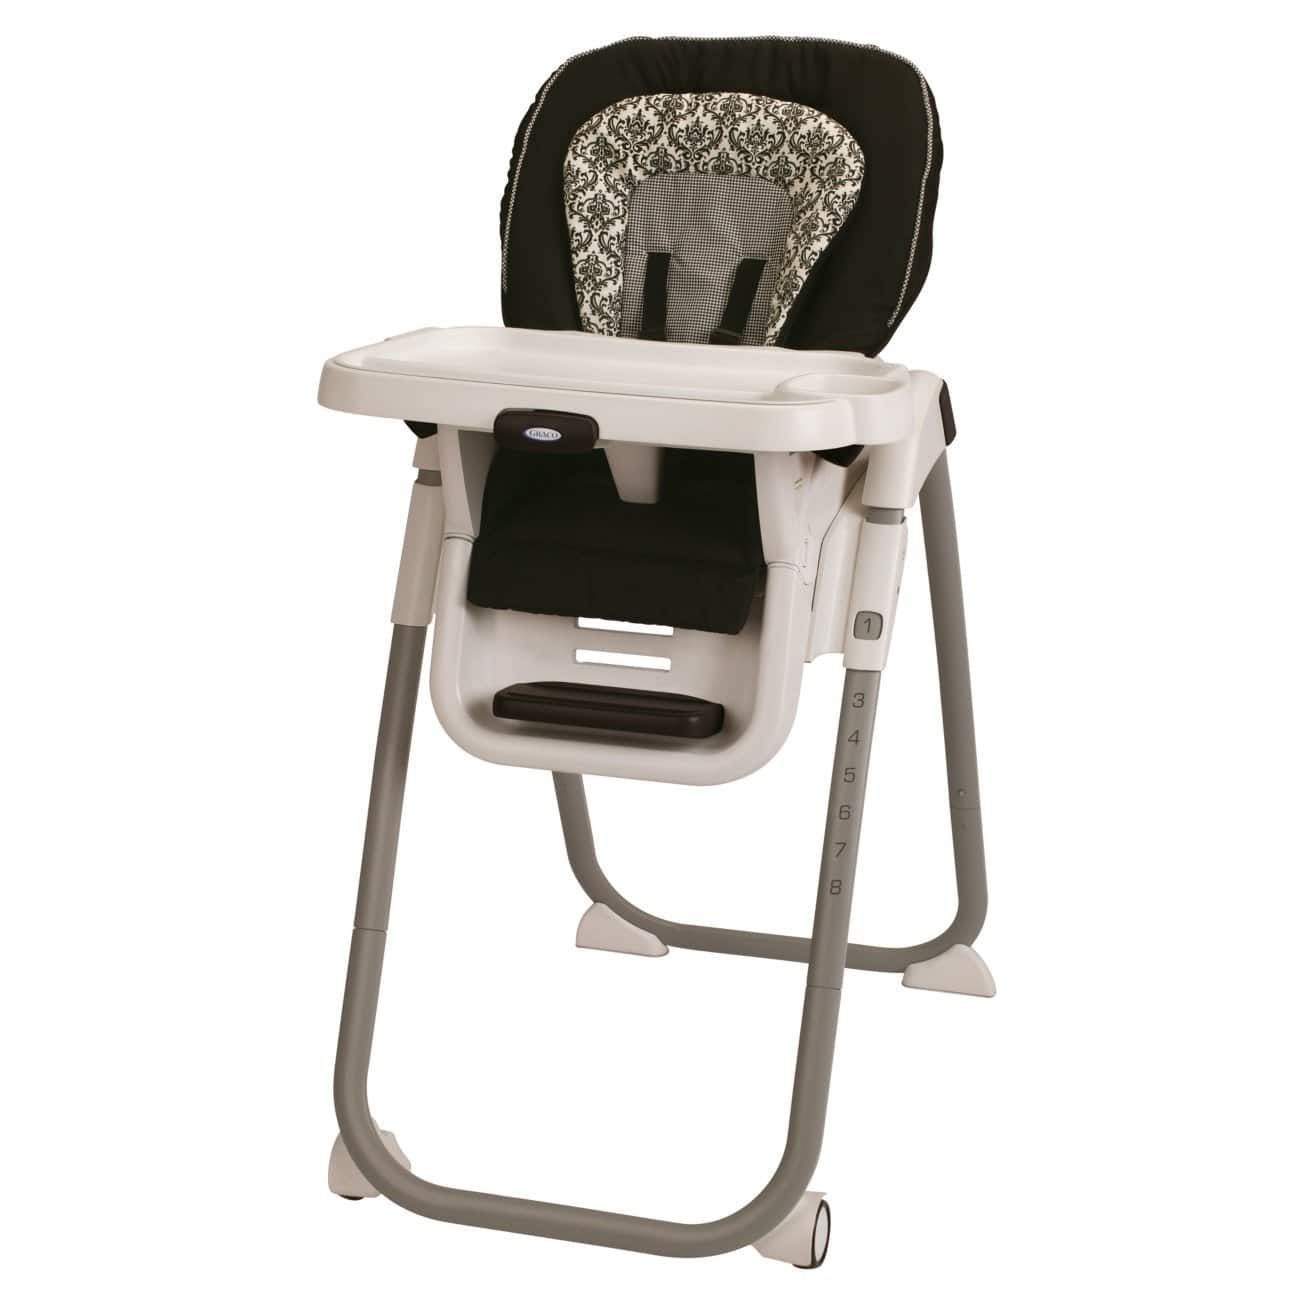 High Chair Deals Graco Tablefit High Chair Rittenhouse For 49 96 At